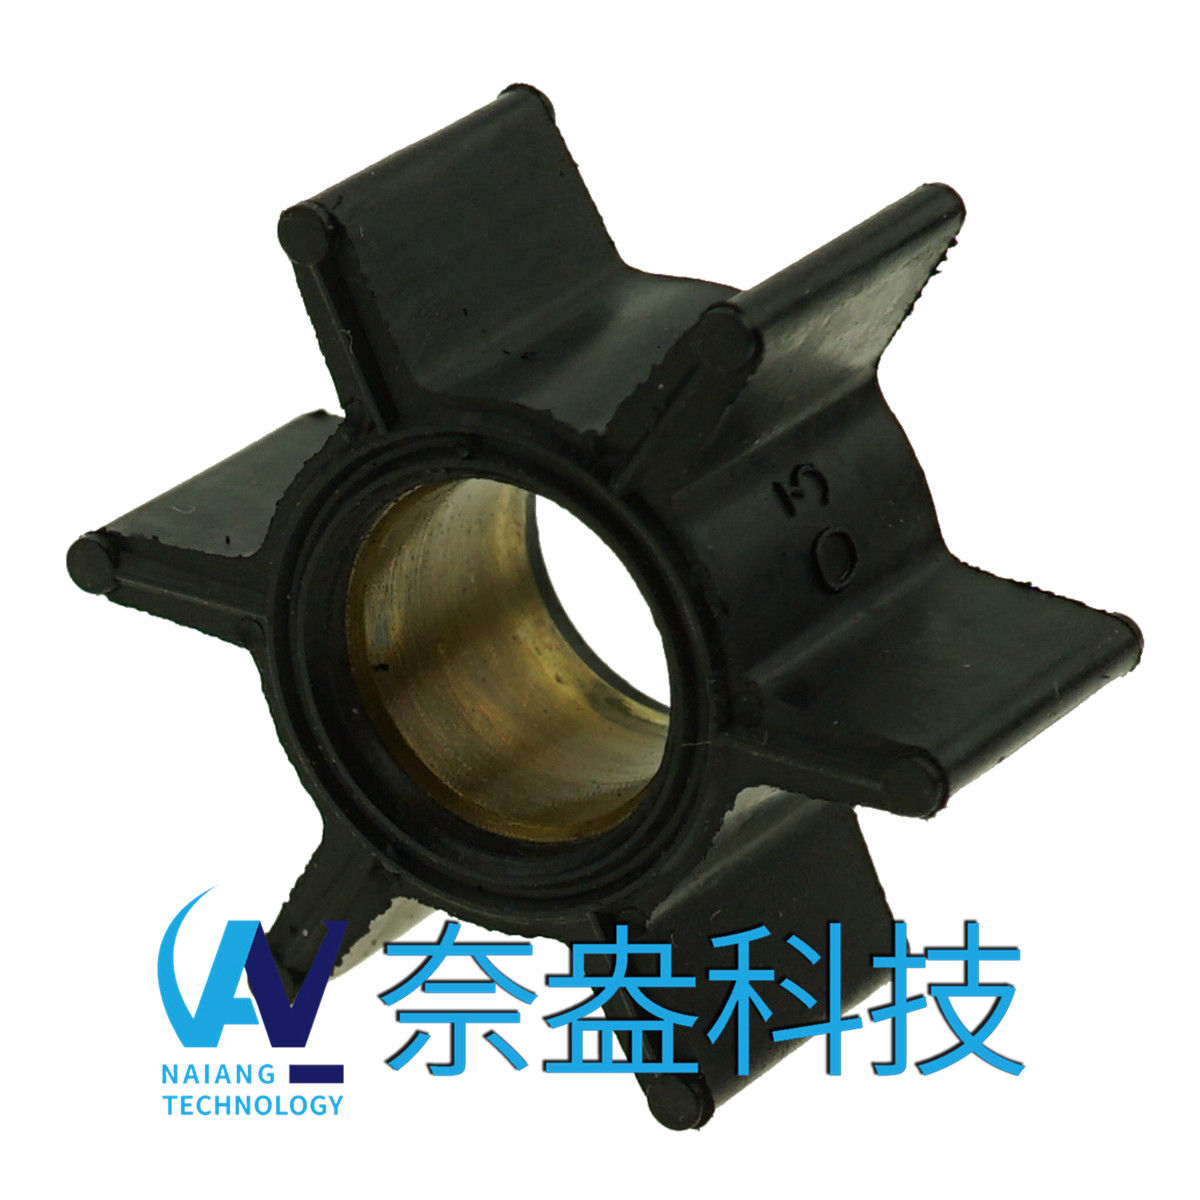 水星舷外機橡膠葉輪 4.5/7.5hp Mercury Impeller47-8998